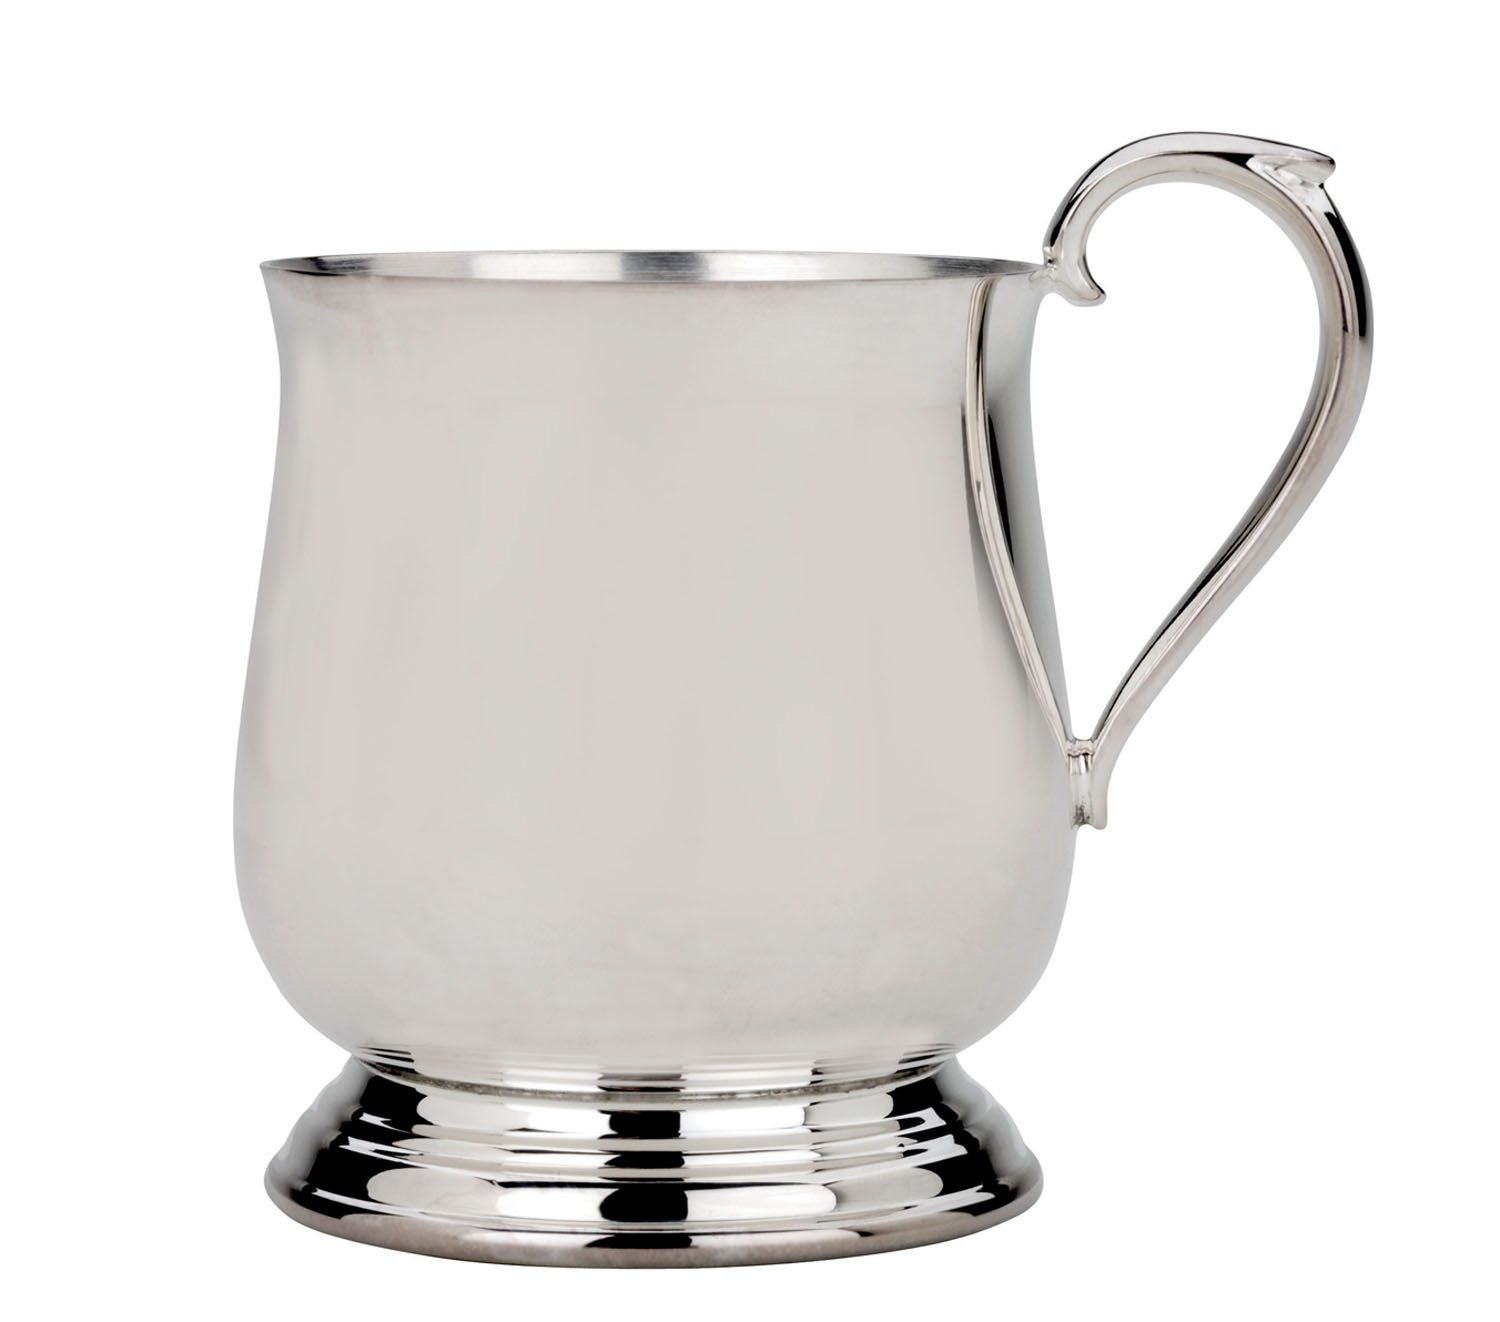 Reed & Barton Silver Plate Baby Cup